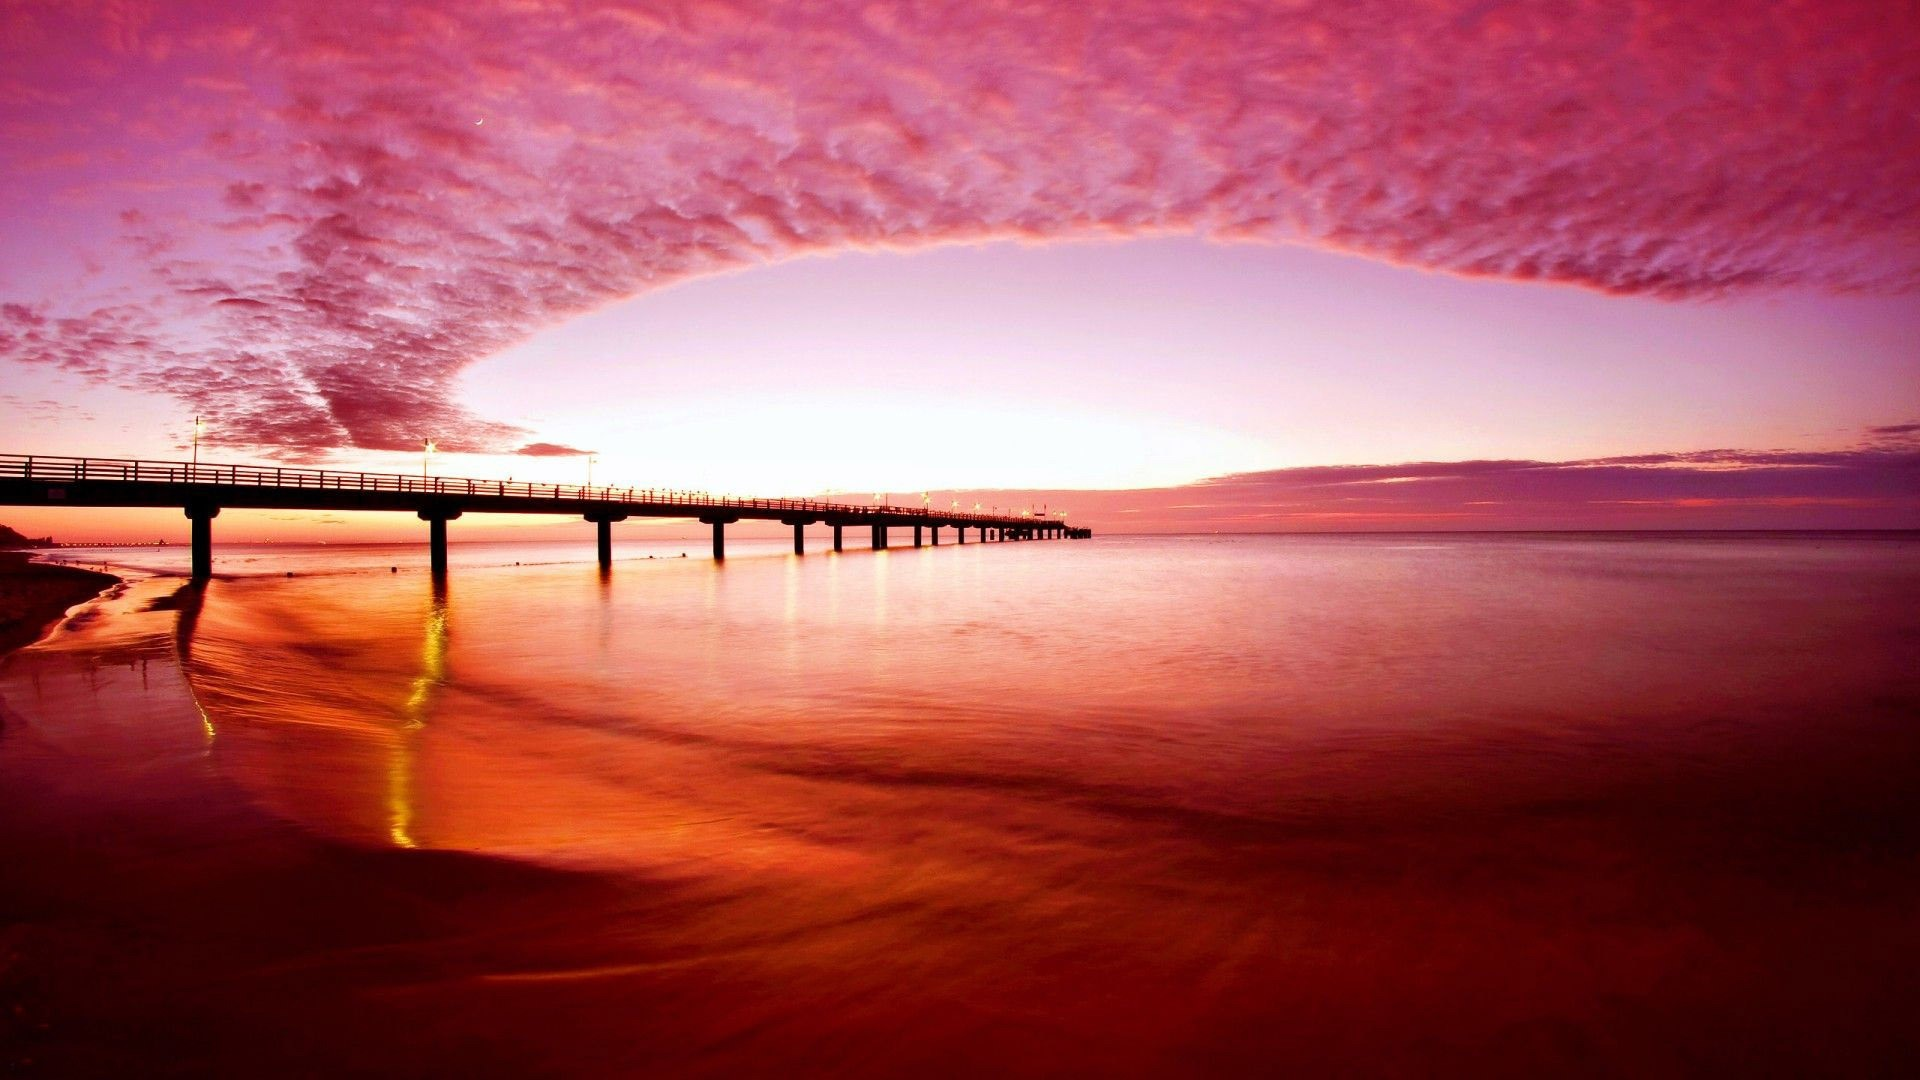 Pink Sunset Wallpaper for pc